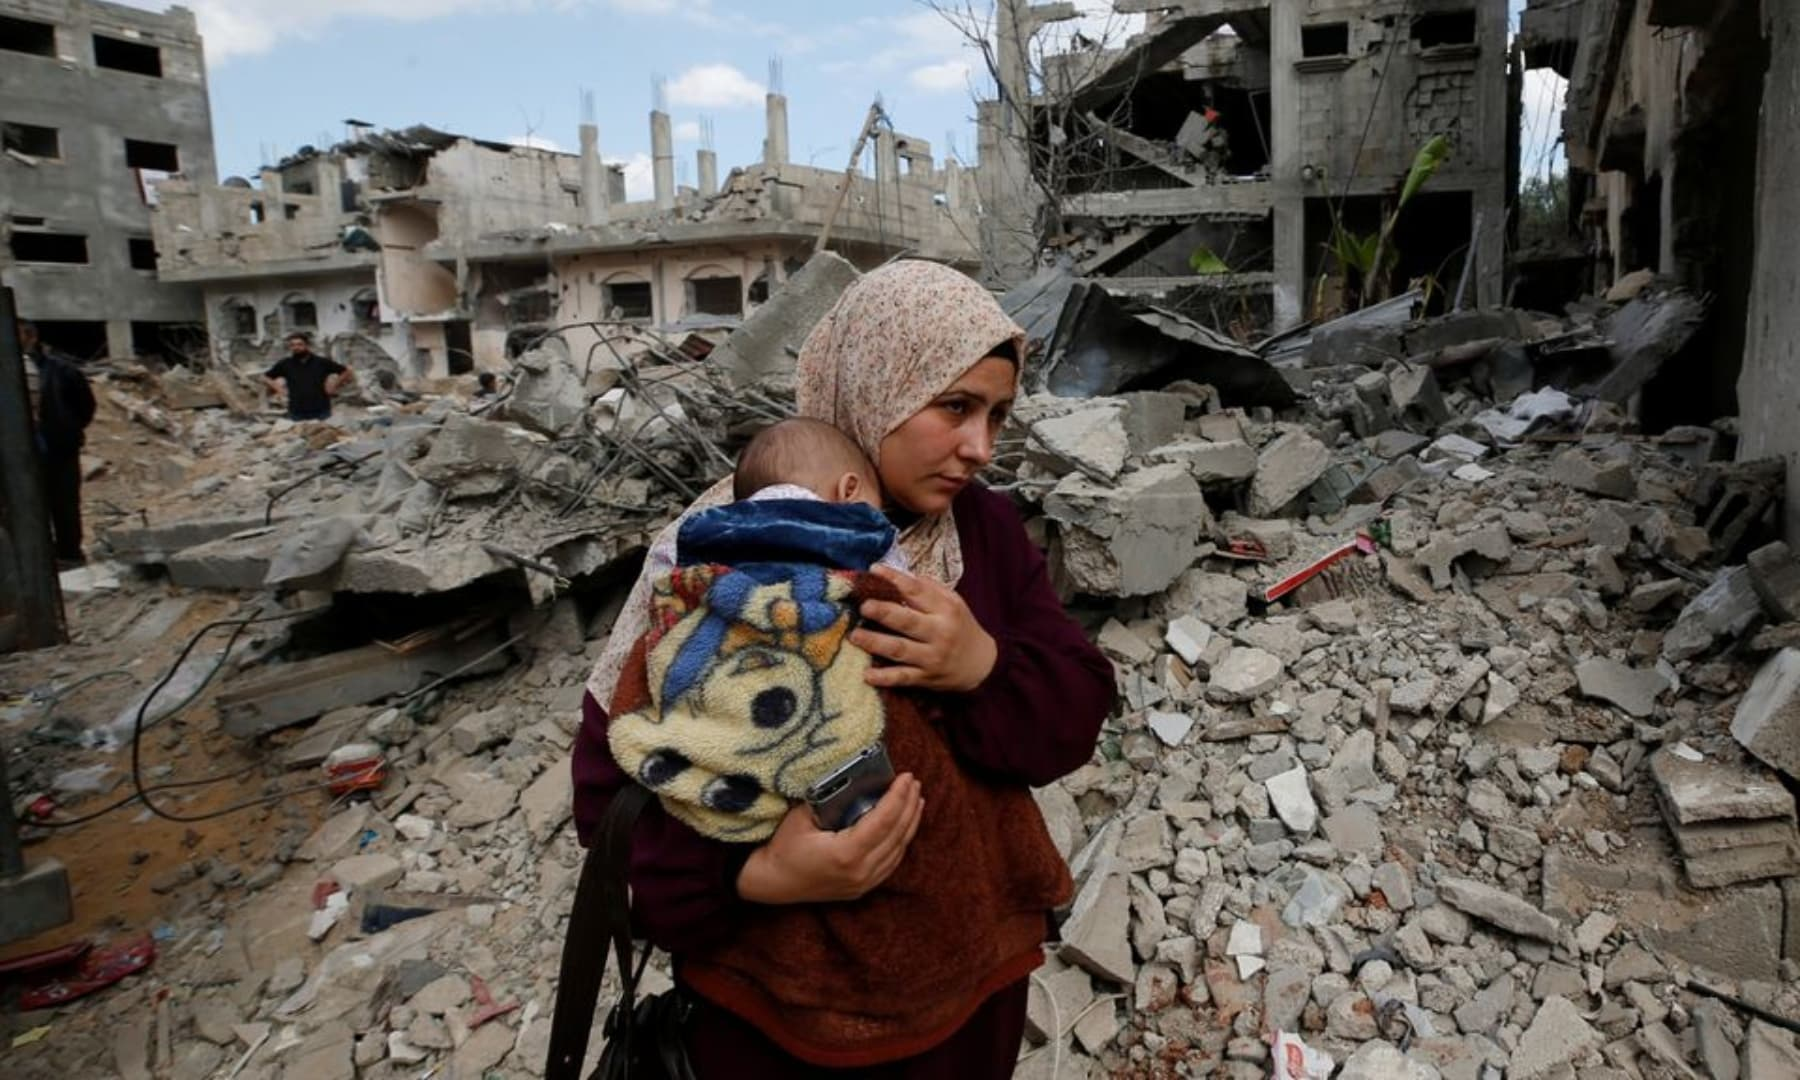 A Palestinian woman carries her child amid the rubble of their houses which were destroyed by Israeli air strikes during the Israeli attacks on Gaza, May 23, 2021. — Reuters